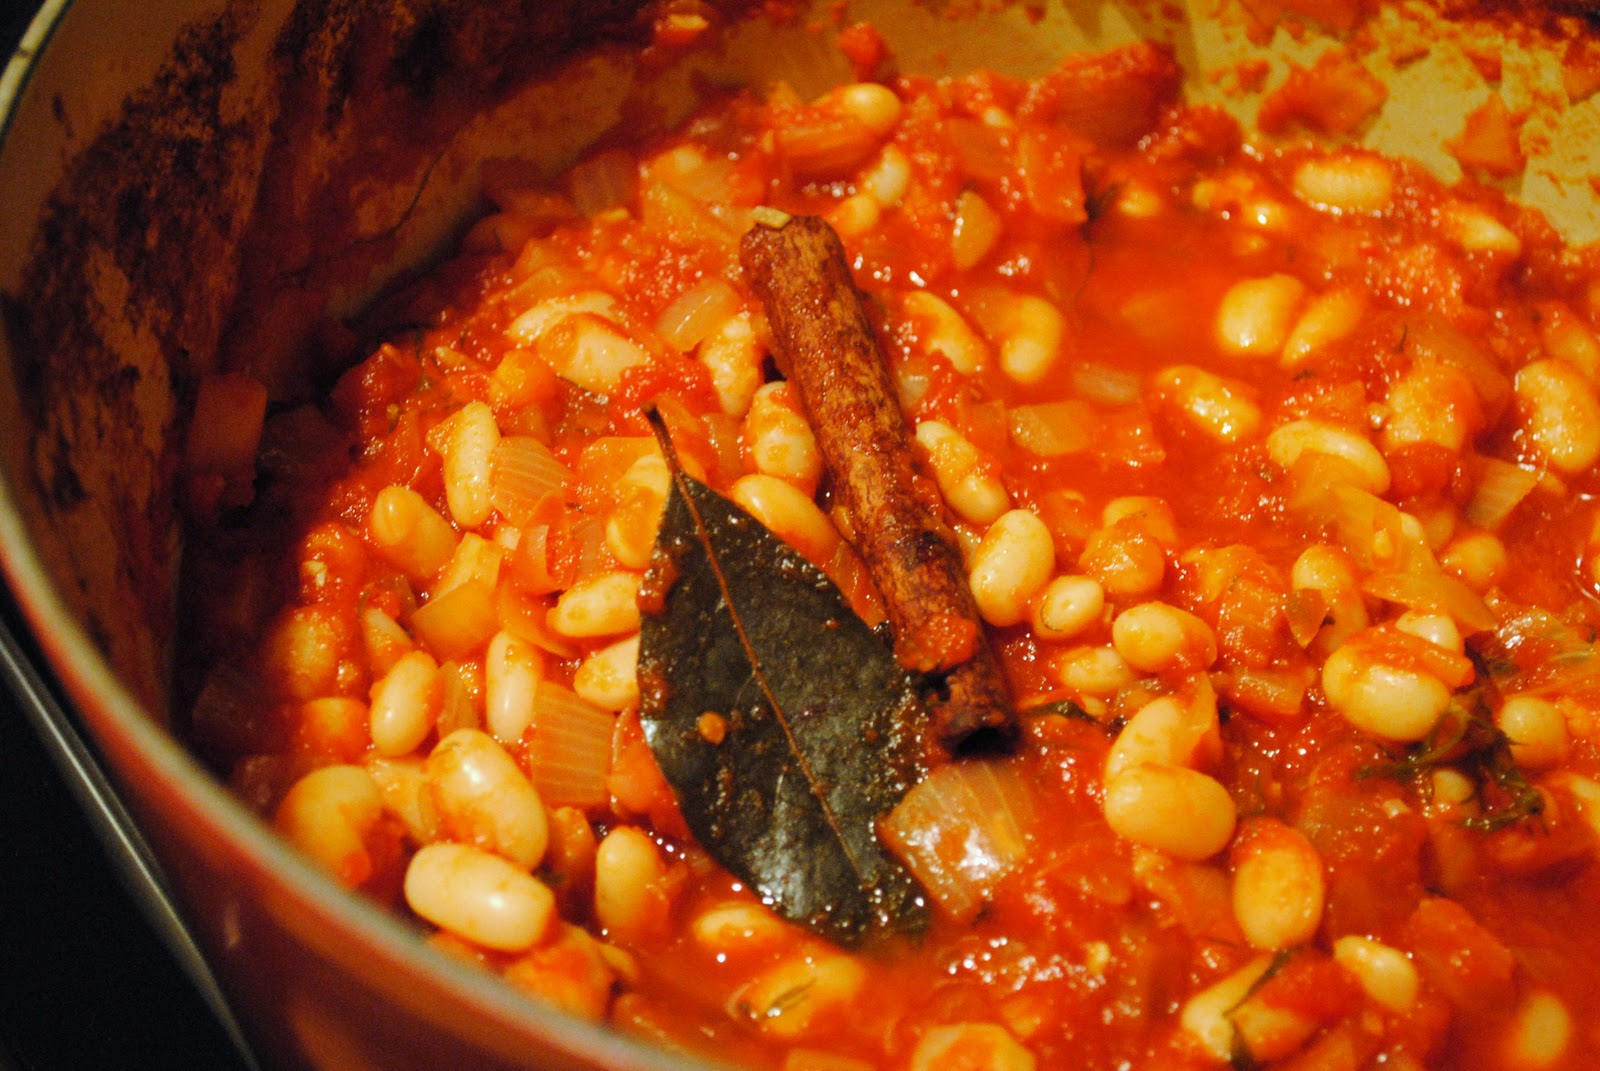 Greek Spiced Tomato Stewed Beans